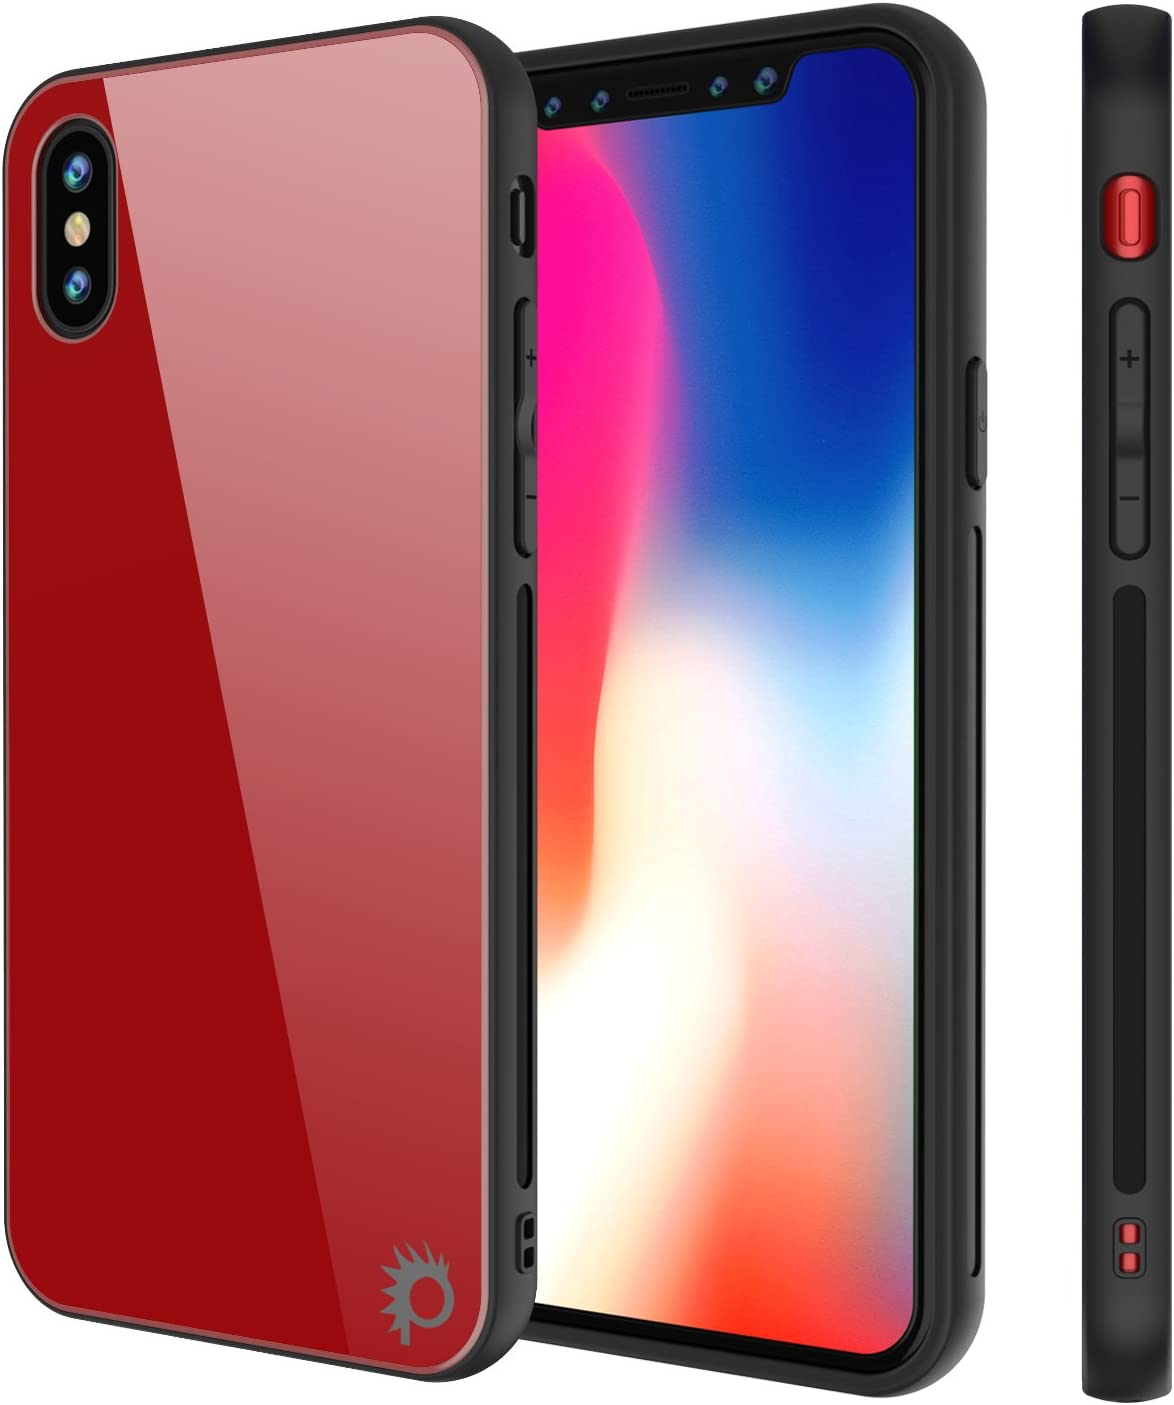 iPhone 8 Case, Punkcase GlassShield Ultra Thin Protective 9H Full Body Tempered Glass Cover W/Drop Protection & Non Slip Grip for Apple iPhone 7 / Apple iPhone 8 (Red)